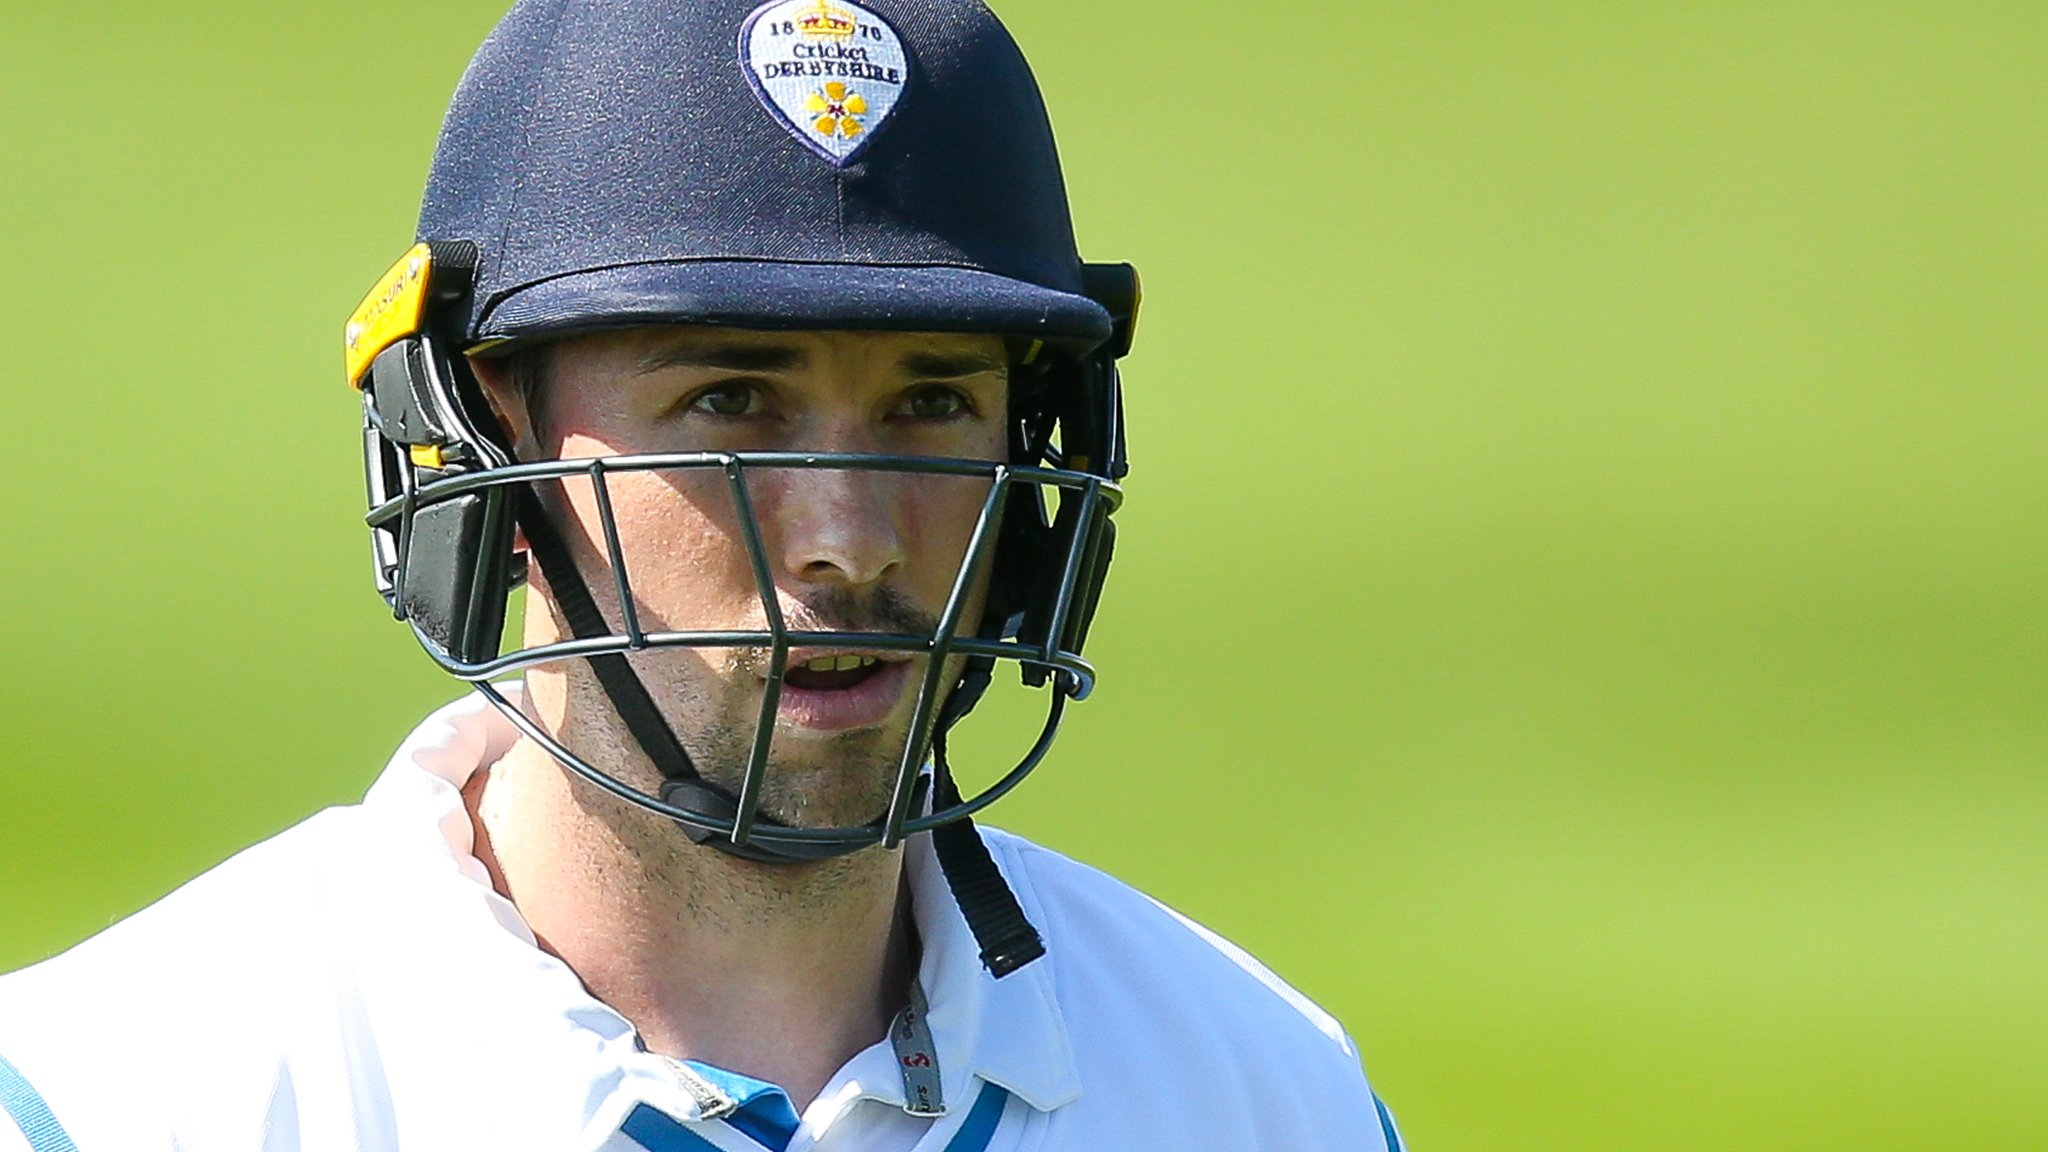 County Championship: Derbyshire boosted by Godleman century at Sussex